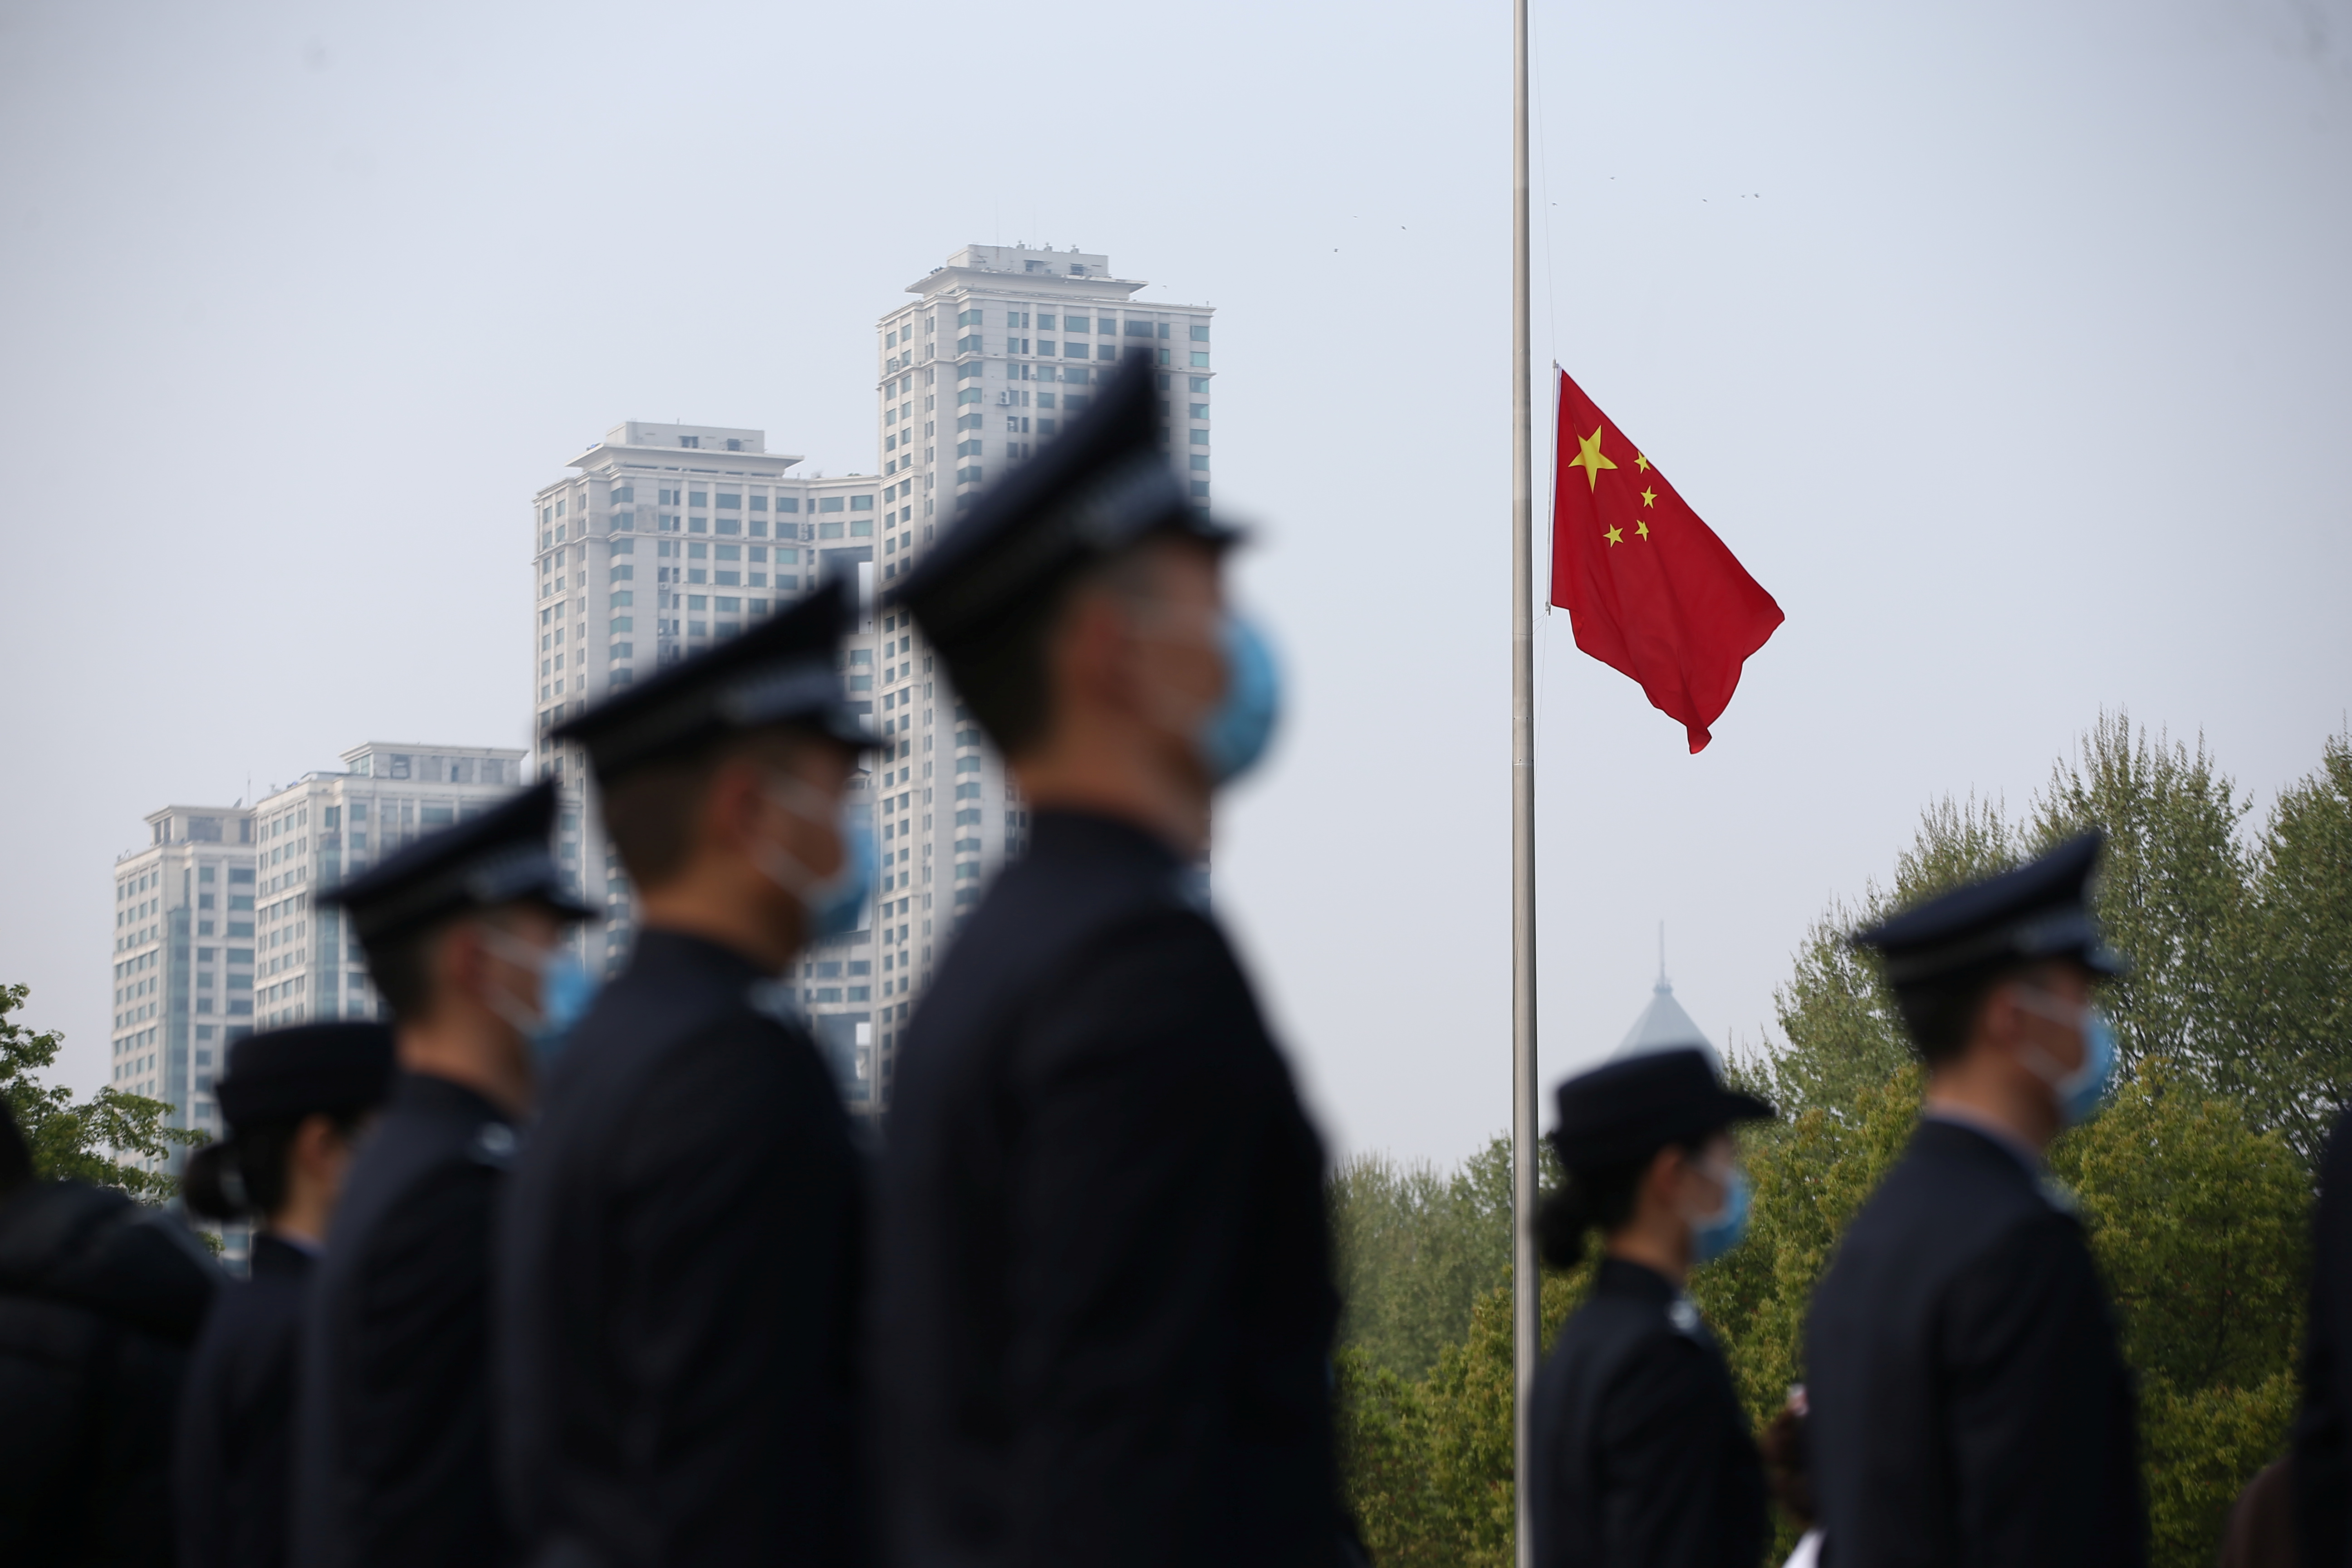 The Chinese national flag flies at half mast at a ceremony mourning those who died of the coronavirus disease (COVID-19) as China holds a nationwide mourning on the Qingming tomb-sweeping festival, in Wuhan, Hubei province, China Apr. 4, 2020. China Daily via REUTERS